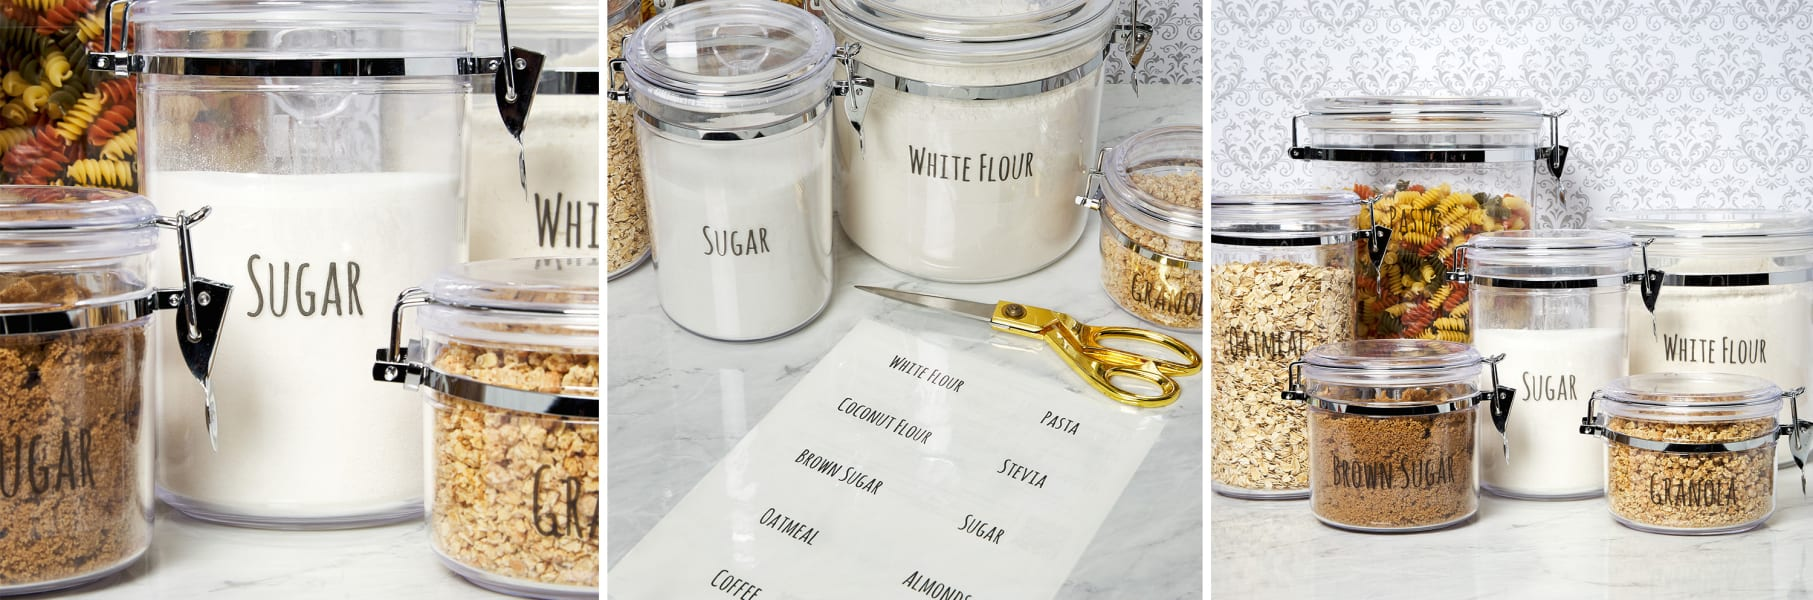 clean white marble kitchen with yellow lemons and spices with cute pantry labels organized on display shelf for extra pantry space